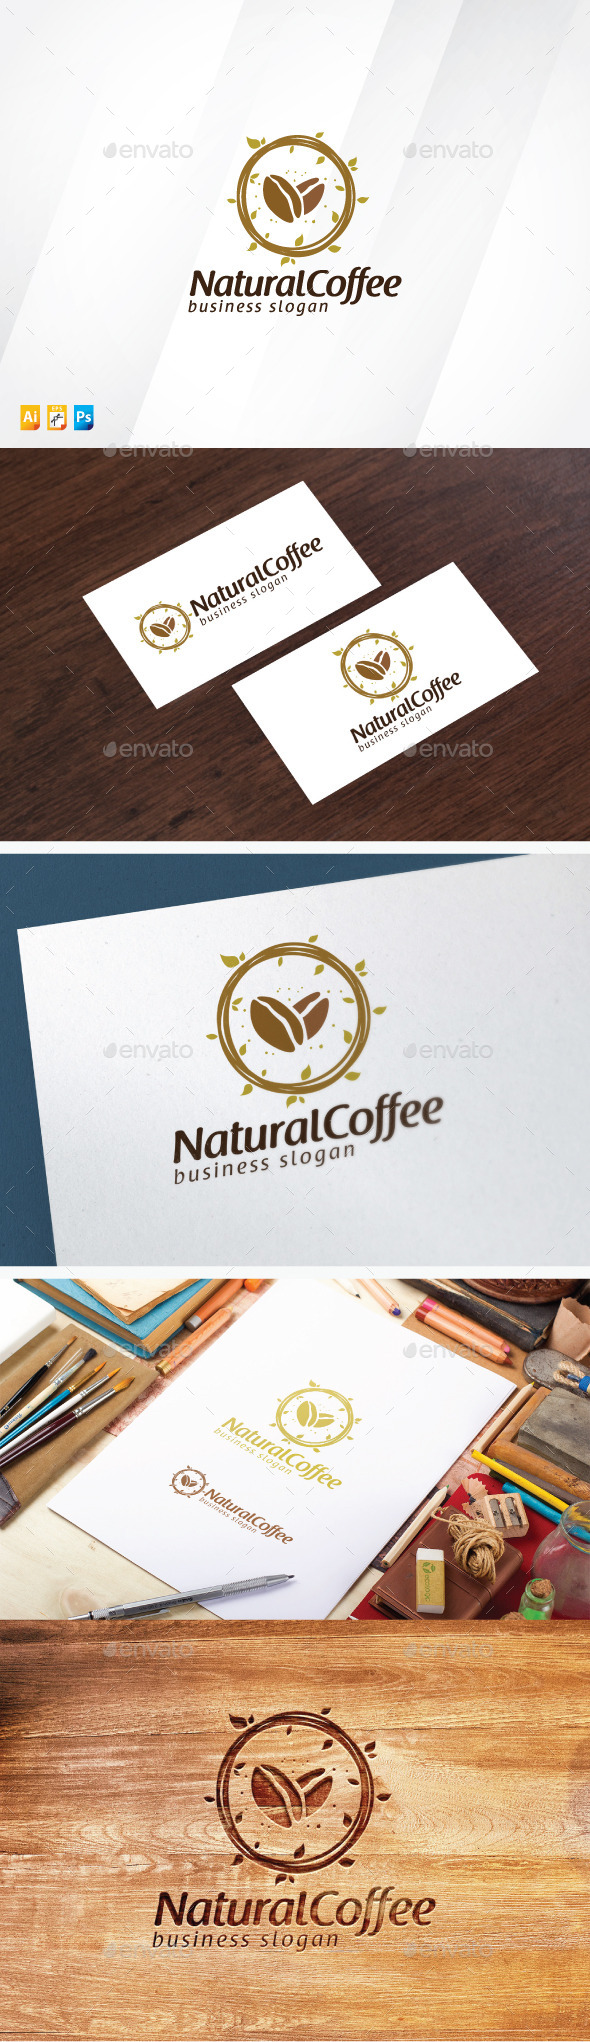 Natural Coffee - Food Logo Templates